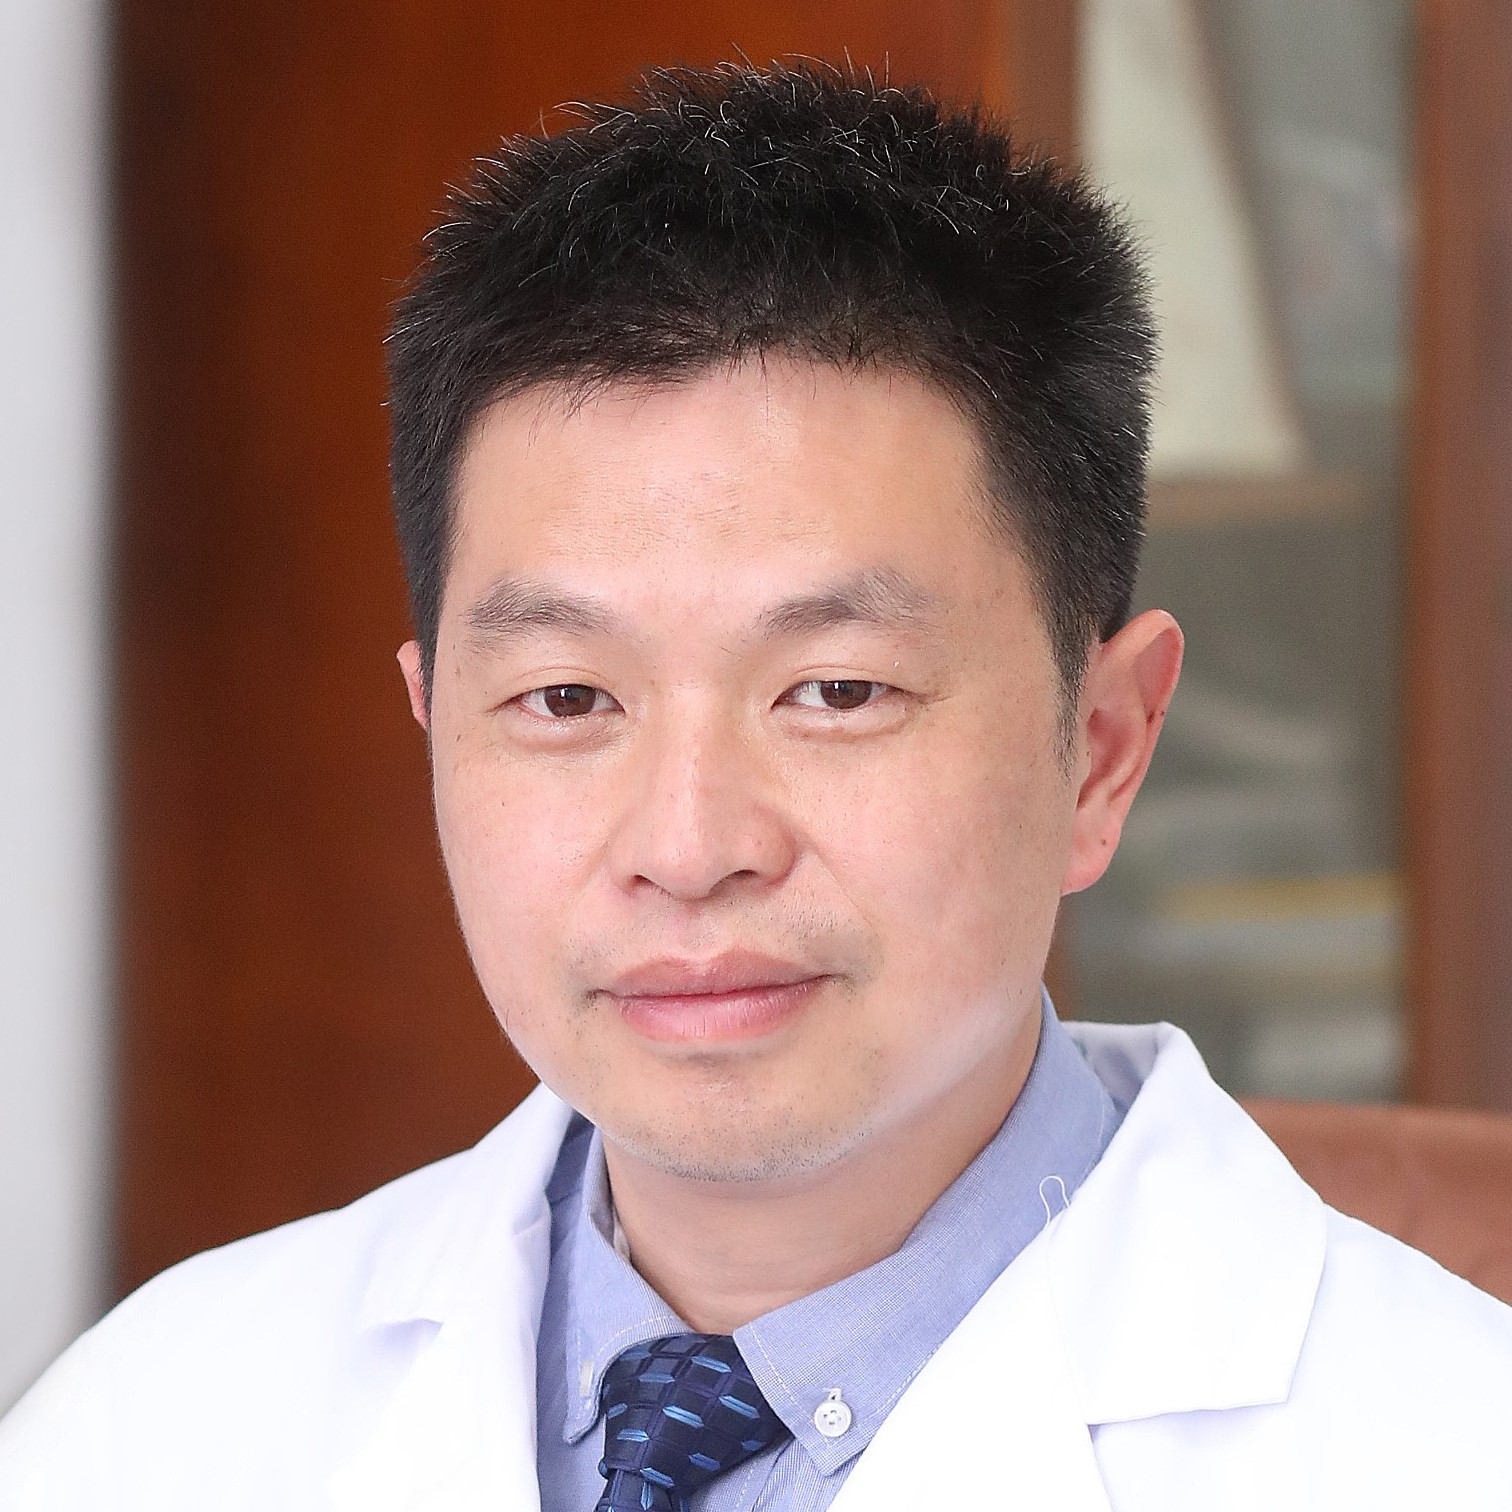 Photo of Dr. Xianghang Luo, PhD